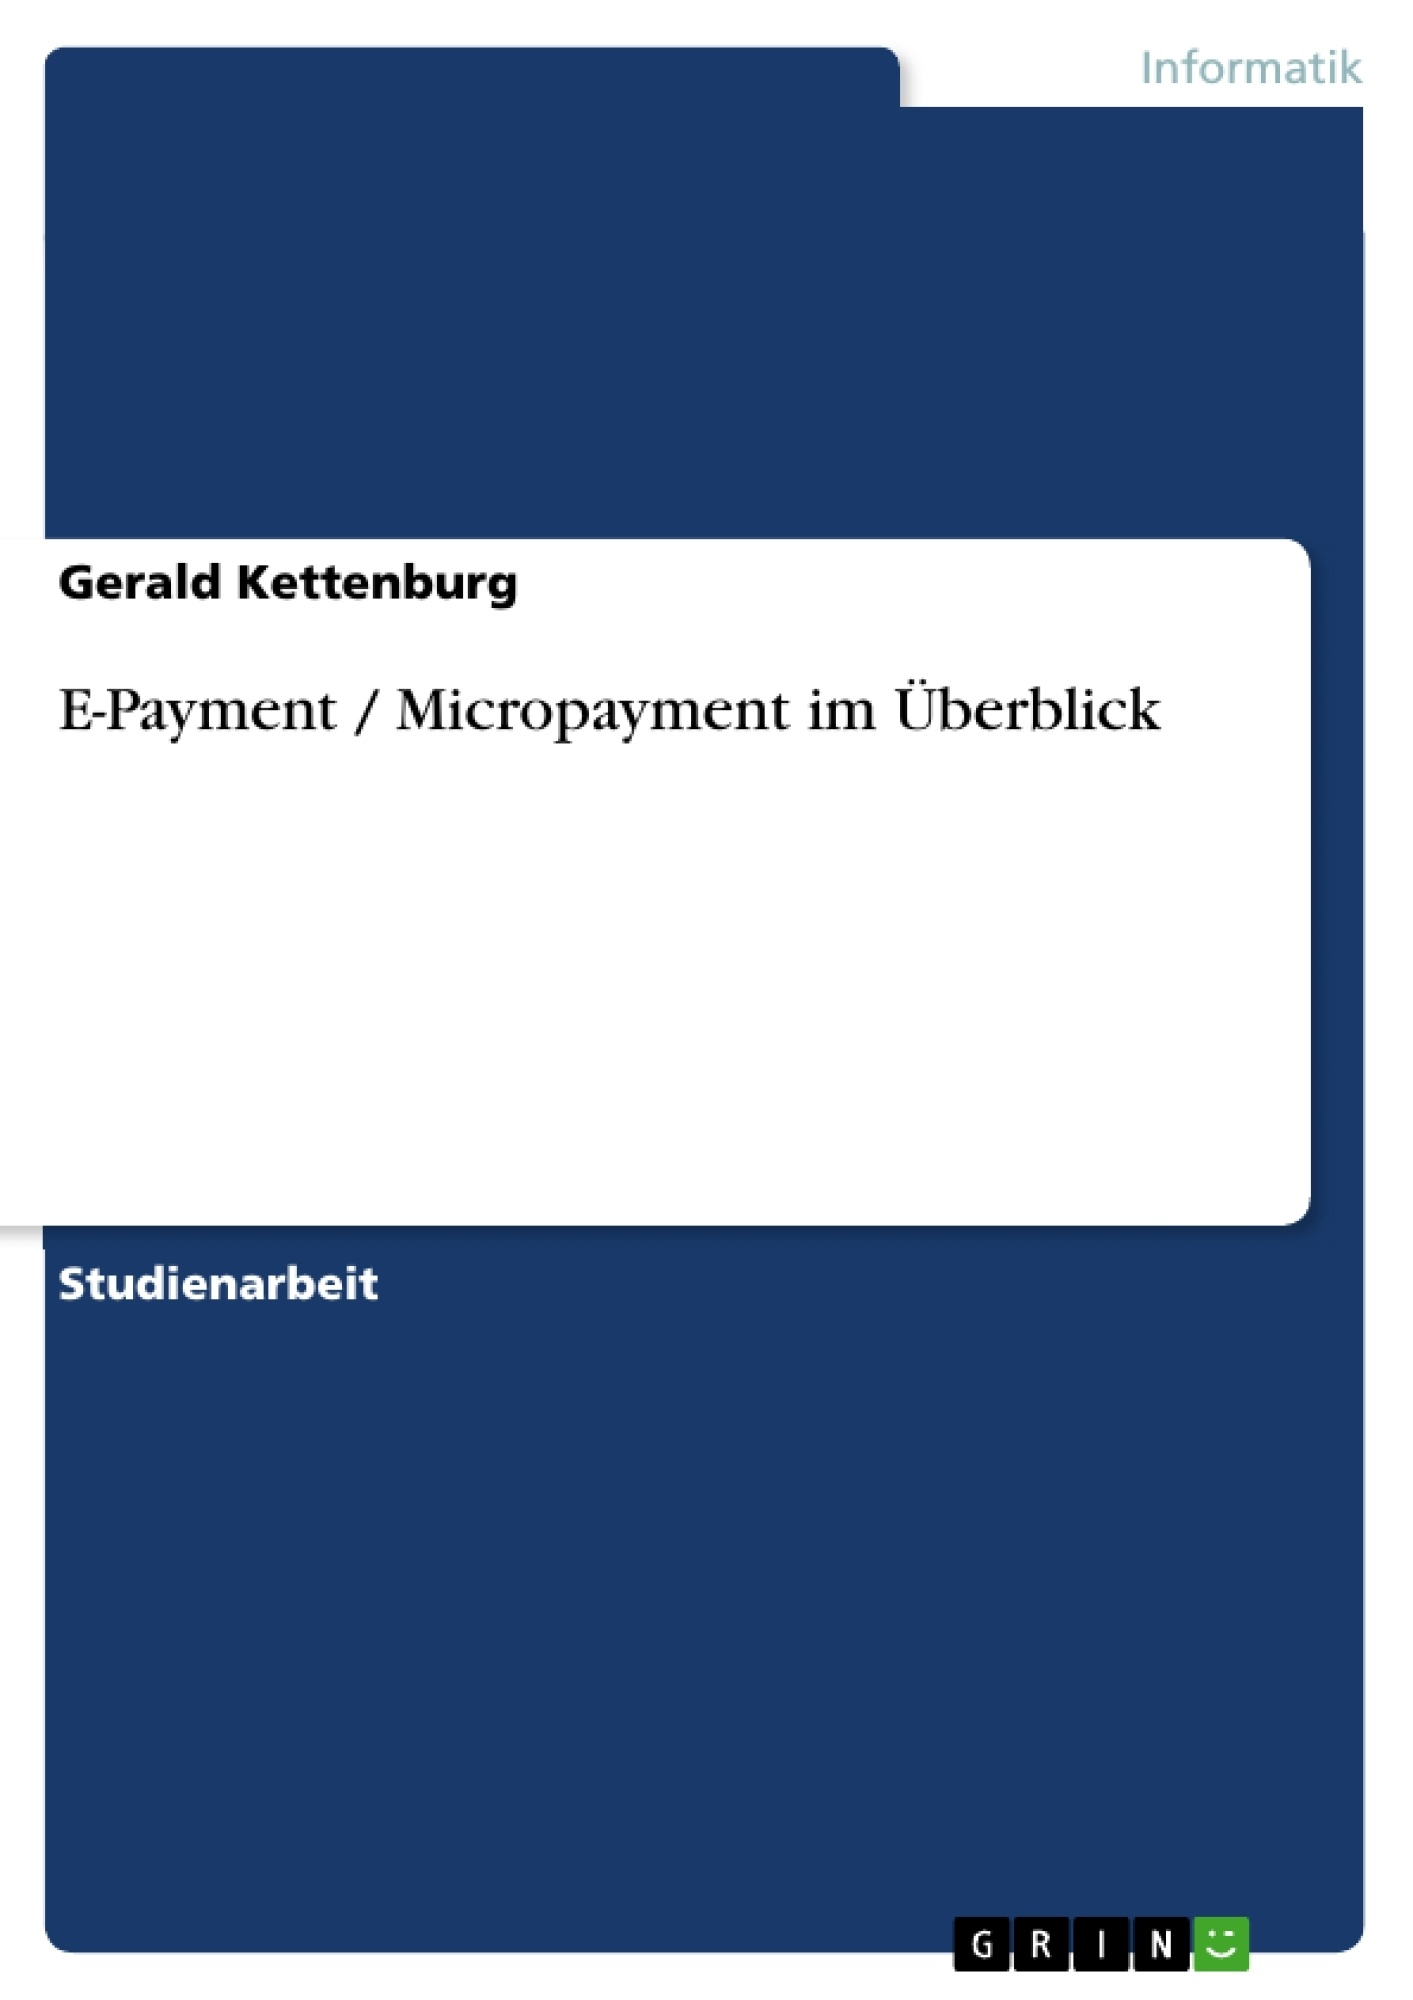 Titel: E-Payment / Micropayment im Überblick